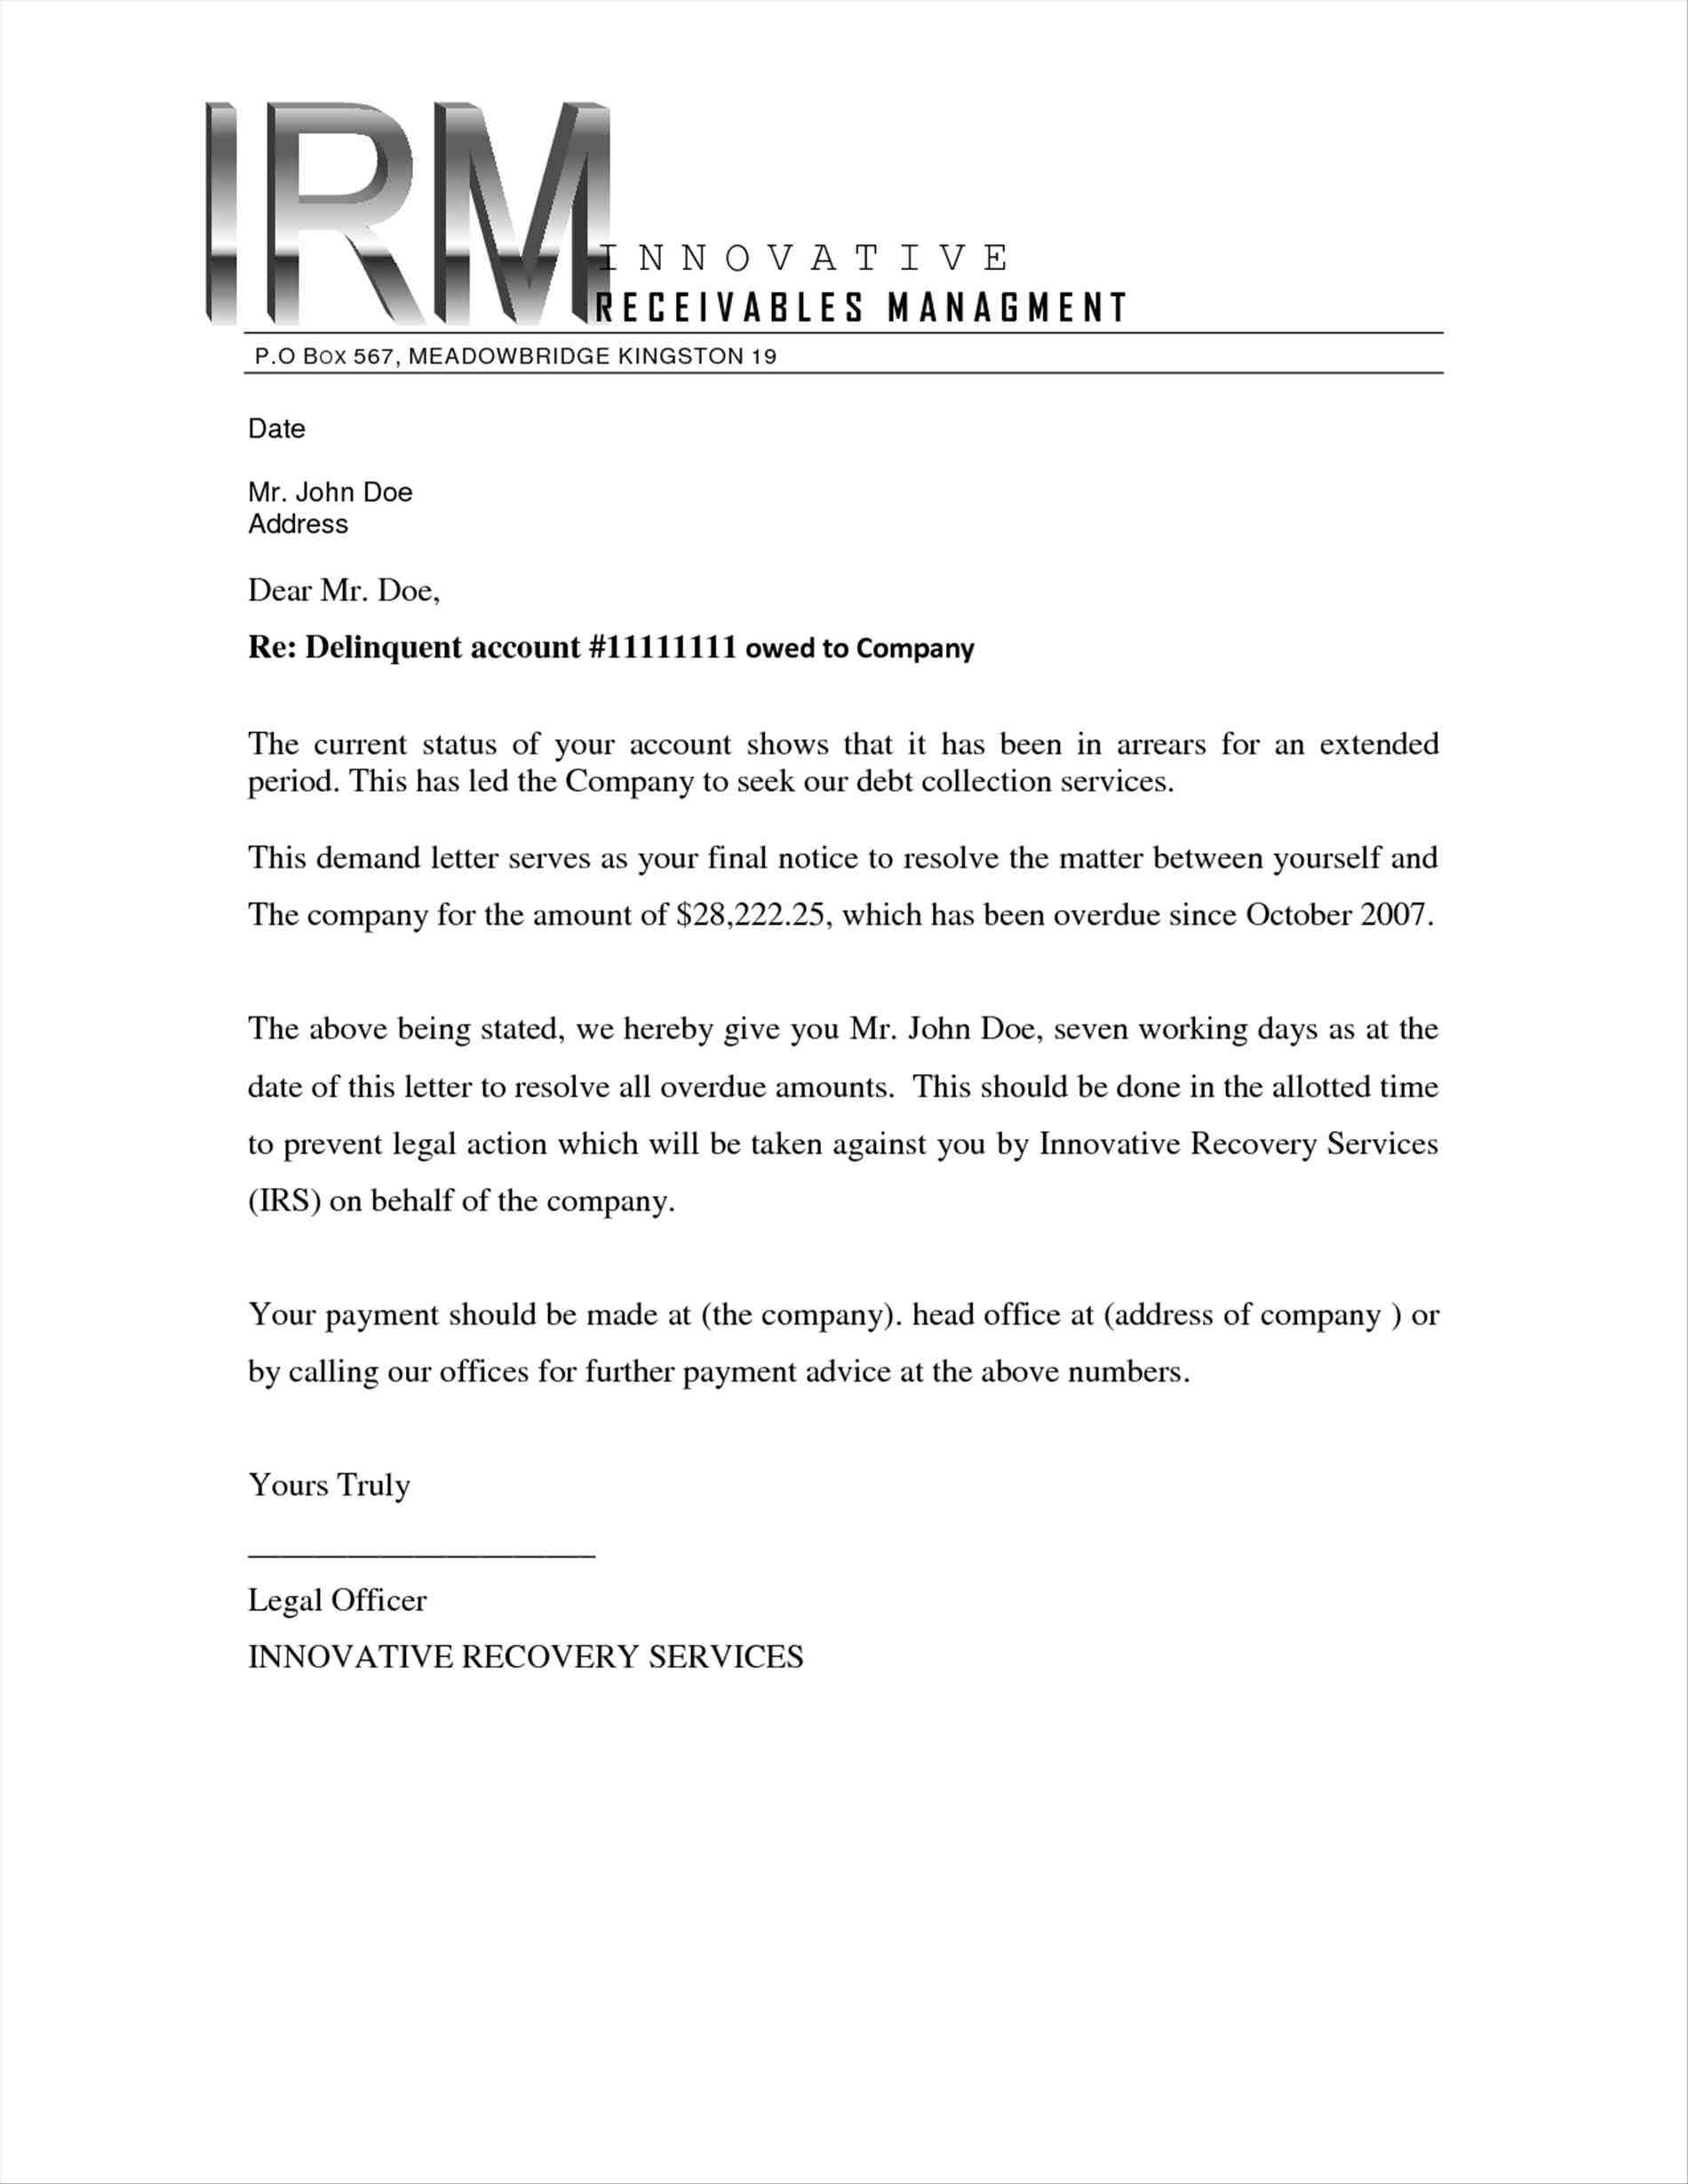 Cease and Desist Letter Template for Debt Collectors - Debt Collectors Letter Template